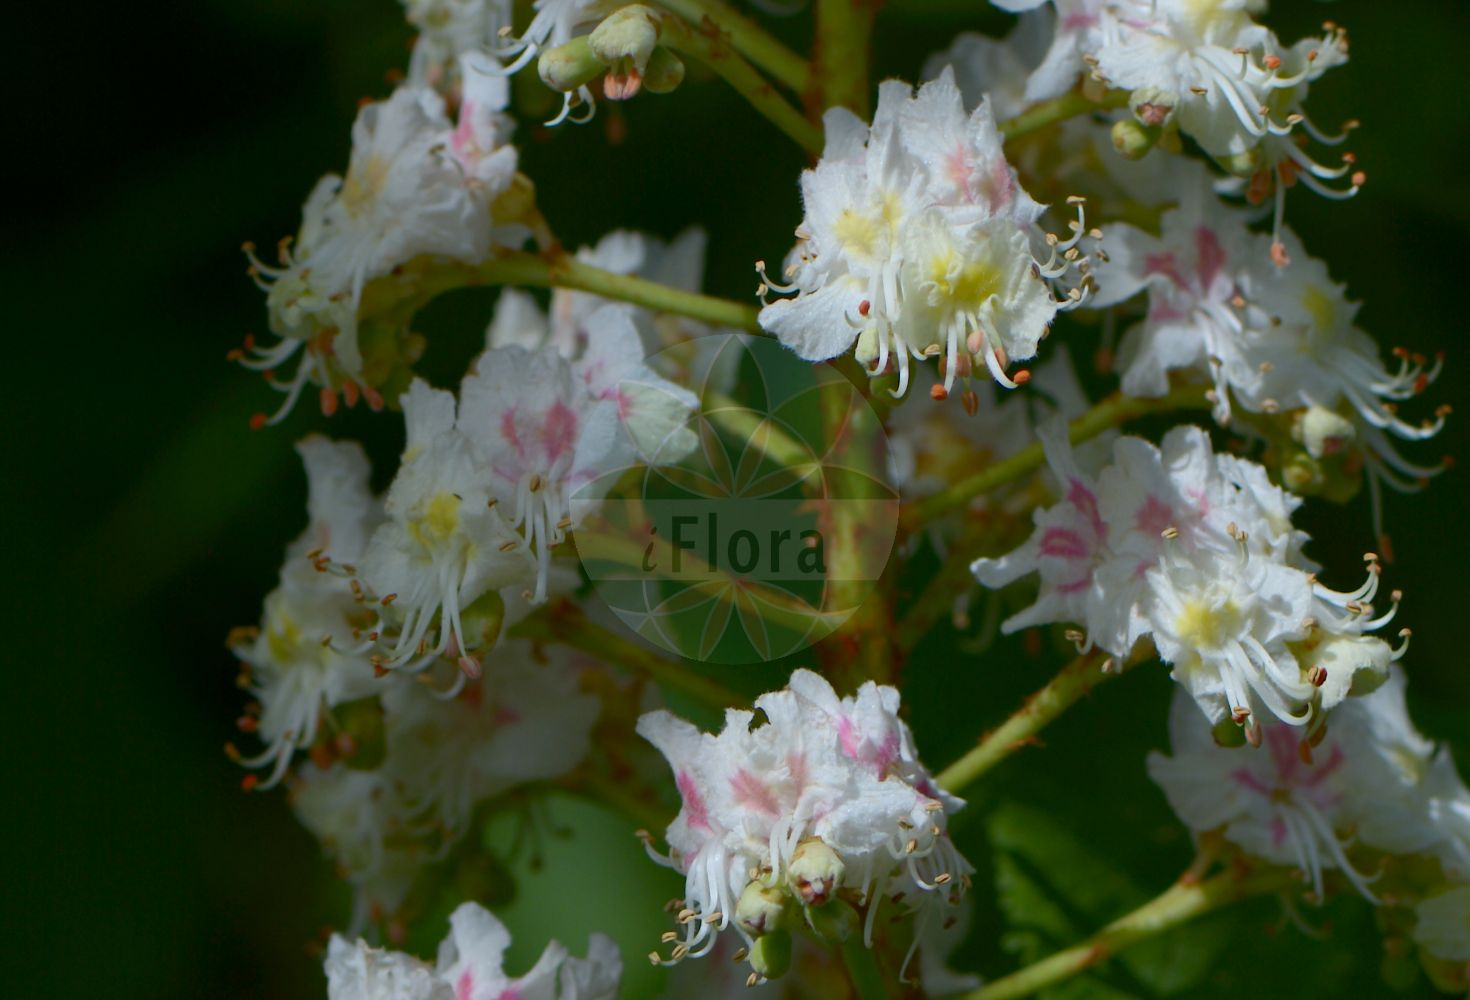 Foto von Aesculus hippocastanum (Gewoehnliche Rosskastanie - Horse-chestnut). Das Bild zeigt Blatt und Bluete. Das Foto wurde in Marburg, Hessen, Deutschland aufgenommen. ---- Photo of Aesculus hippocastanum (Gewoehnliche Rosskastanie - Horse-chestnut).The image is showing leaf and flower.The picture was taken in Marburg, Hesse, Germany. (Aesculus hippocastanum,Gewoehnliche Rosskastanie,Horse-chestnut,Balkan-Rosskastanie,Europaeische Rosskastanie,Weisse Rosskastanie,Common Horse Chestnut,Aesculus,Rosskastanie,Horse-chestnut,Sapindaceae,Seifenbaumgewaechse,Soapberry family,Blatt,Bluete,leaf,flower)